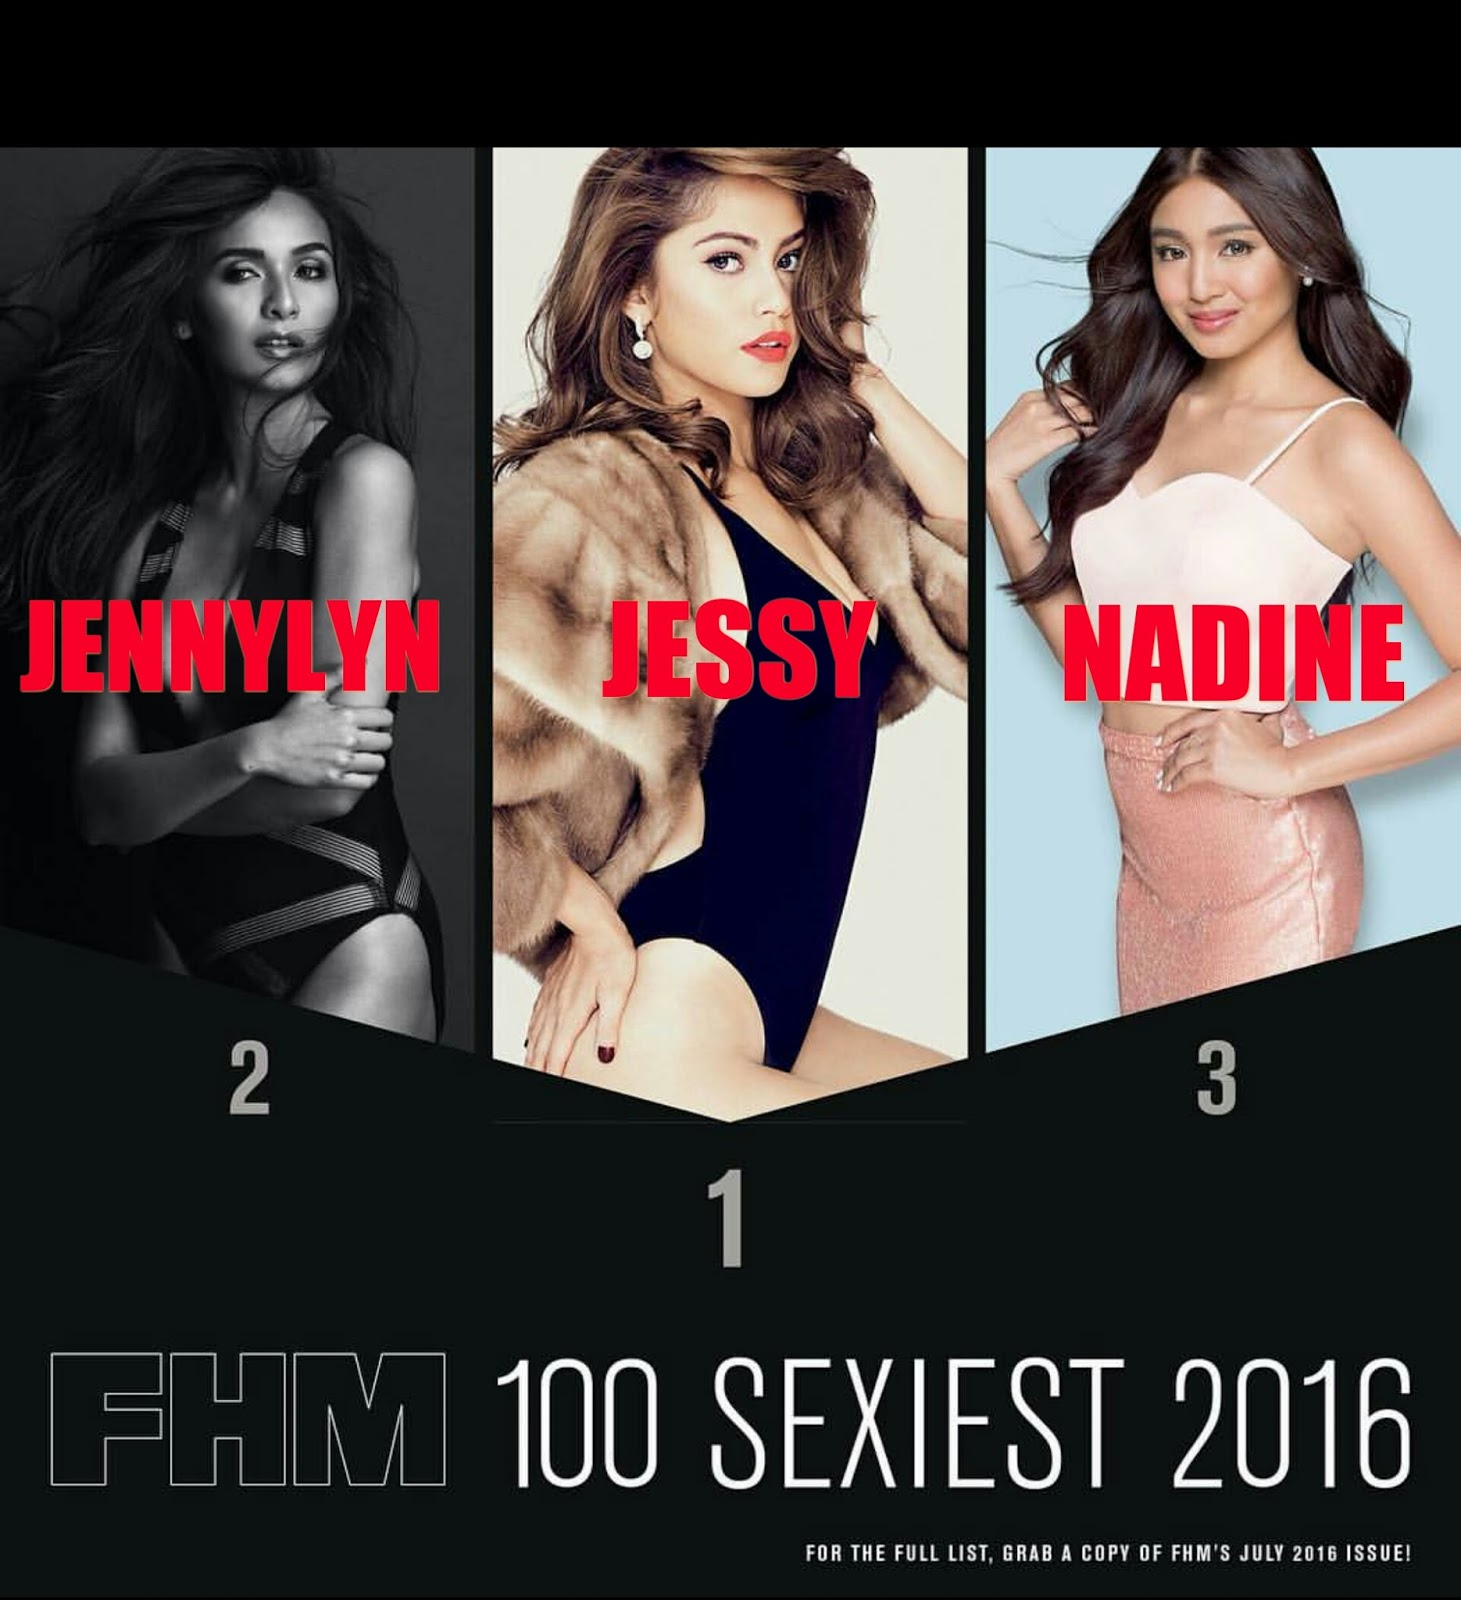 FHM Philippines 100 Sexiest Women 2016